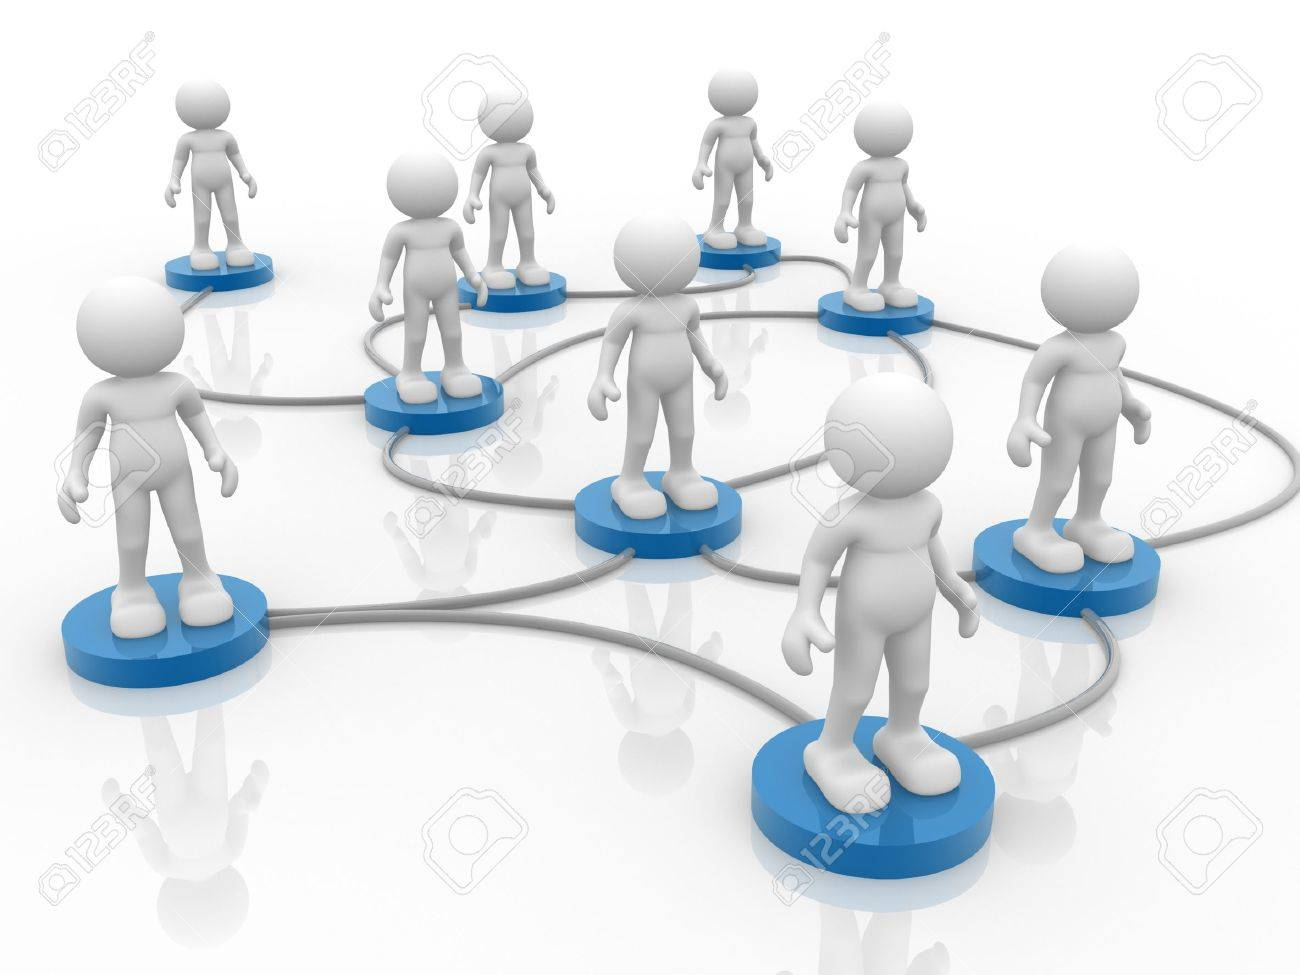 d people human character arranged in a network d render 3d people human character arranged in a network 3d render illustration stock illustration